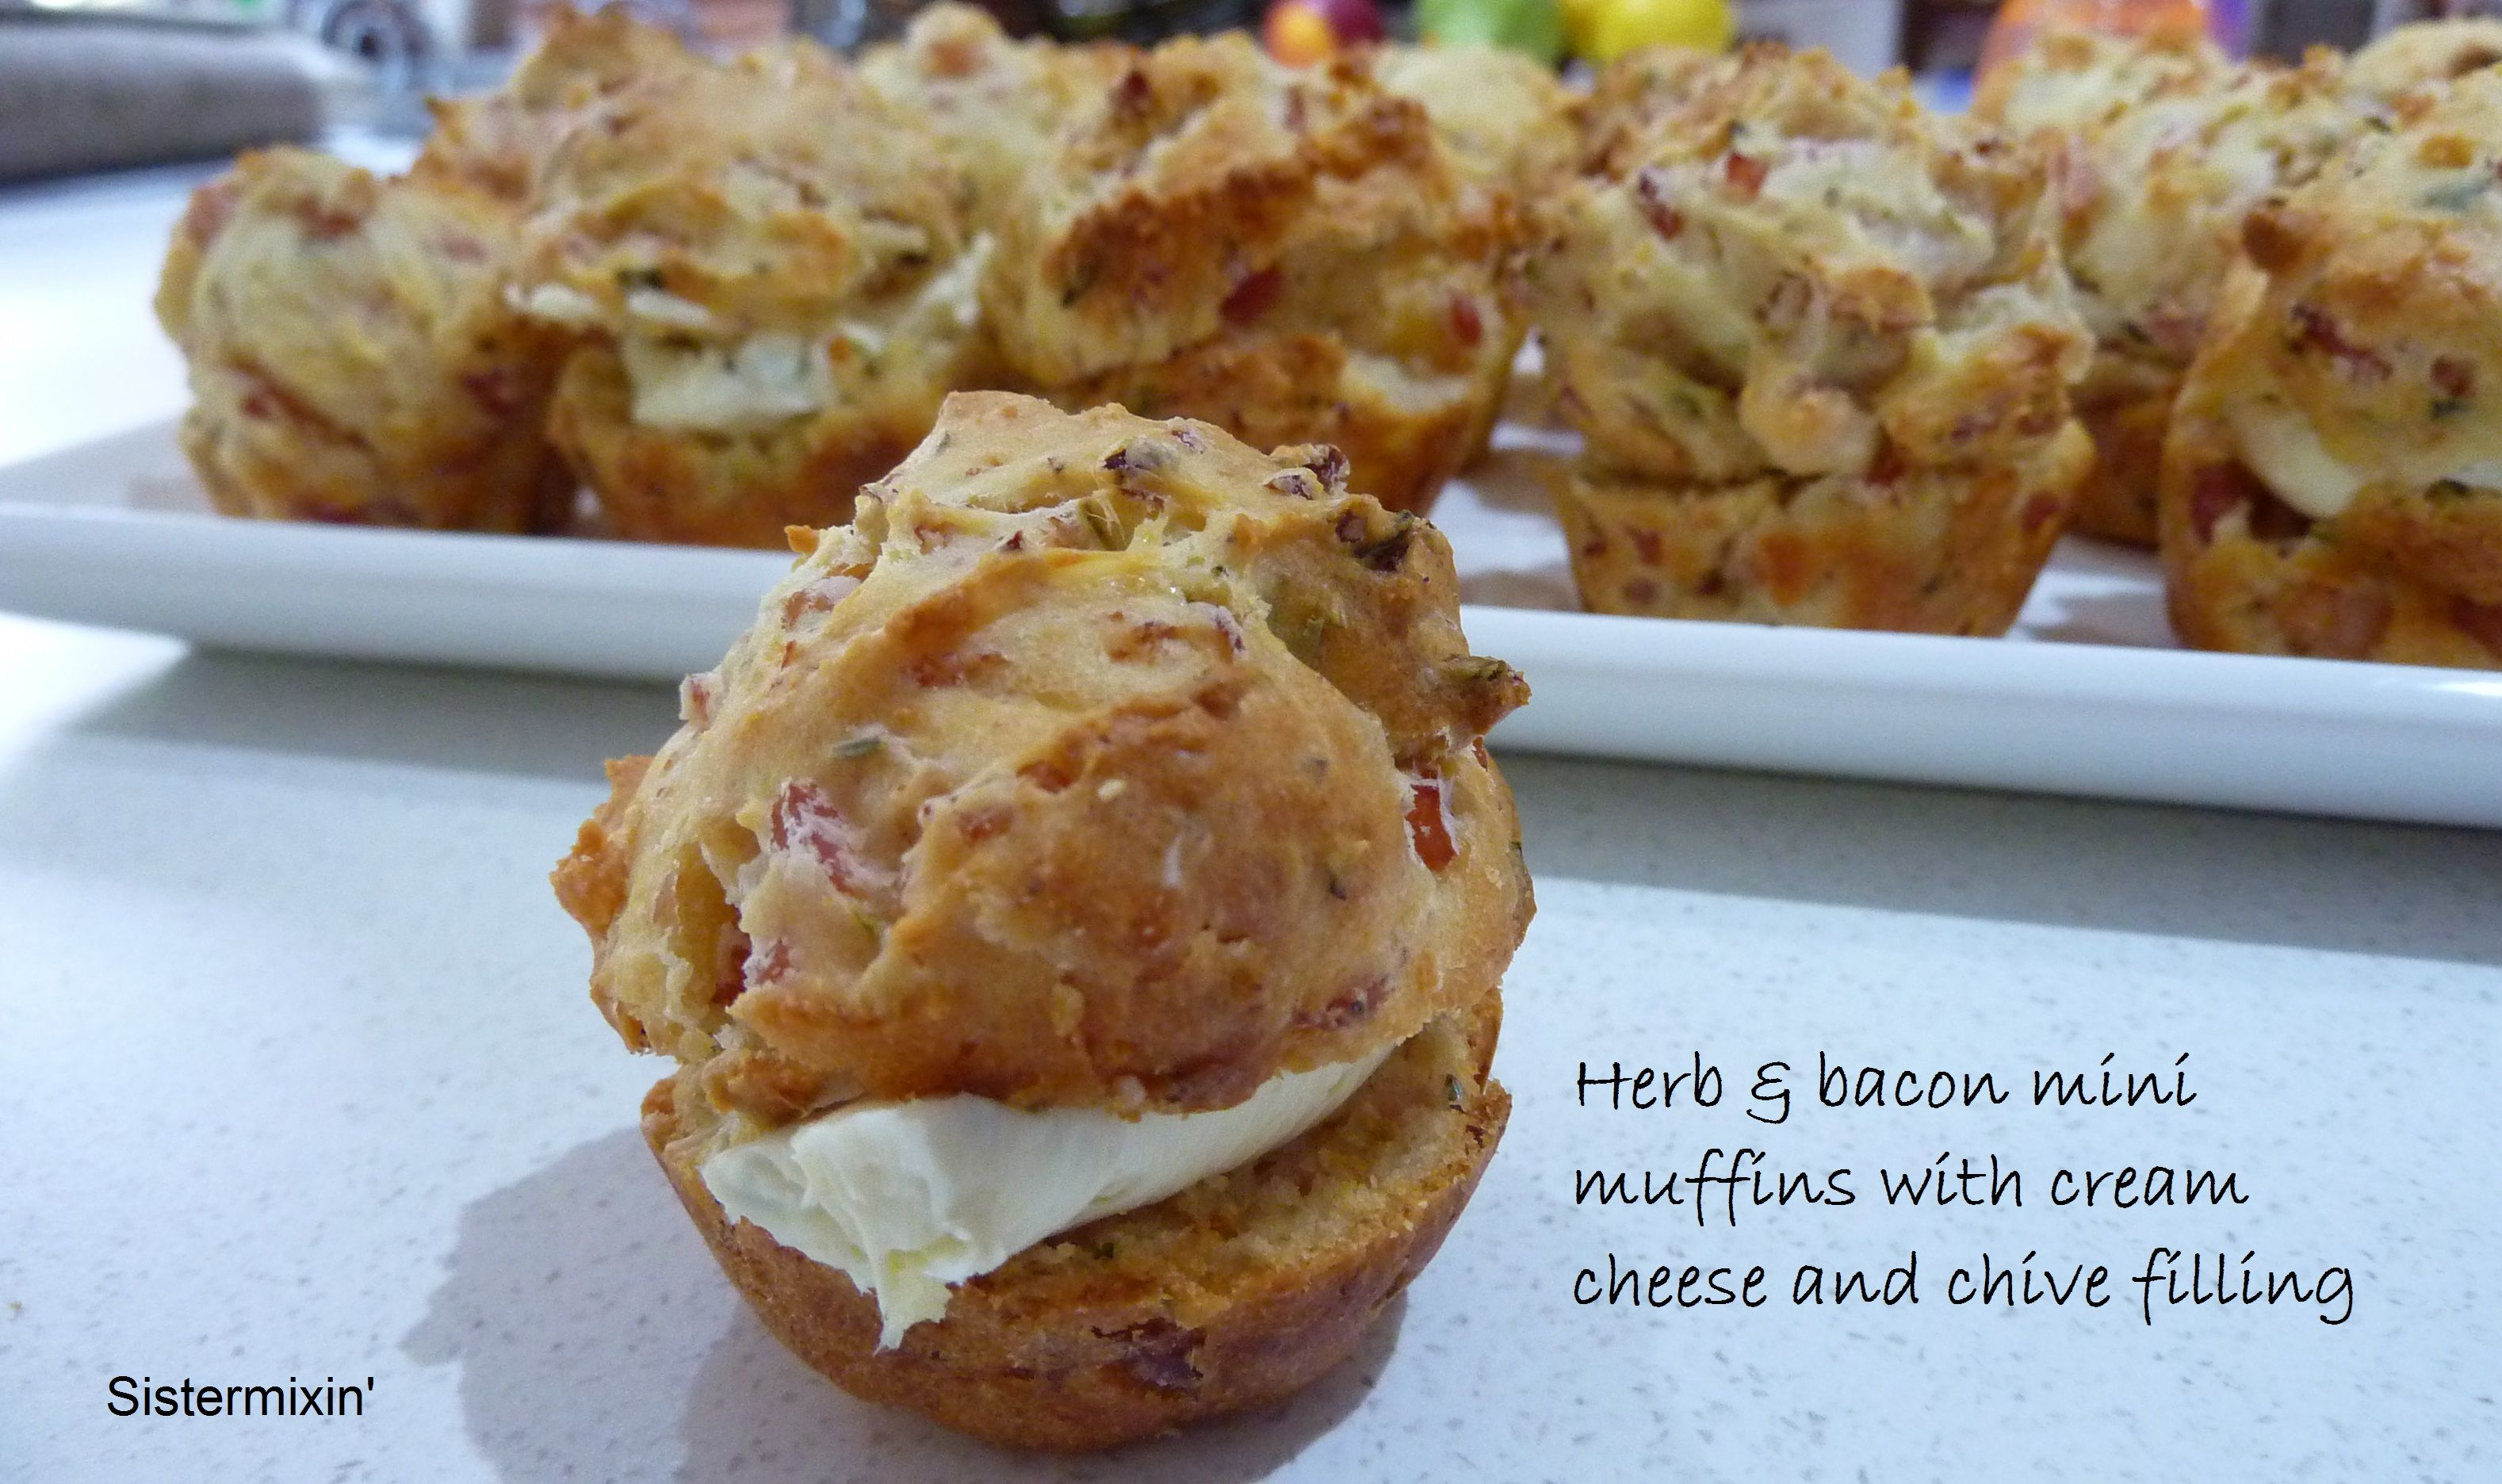 Herb & Bacon Mini Muffins With Cream Cheese & Chive